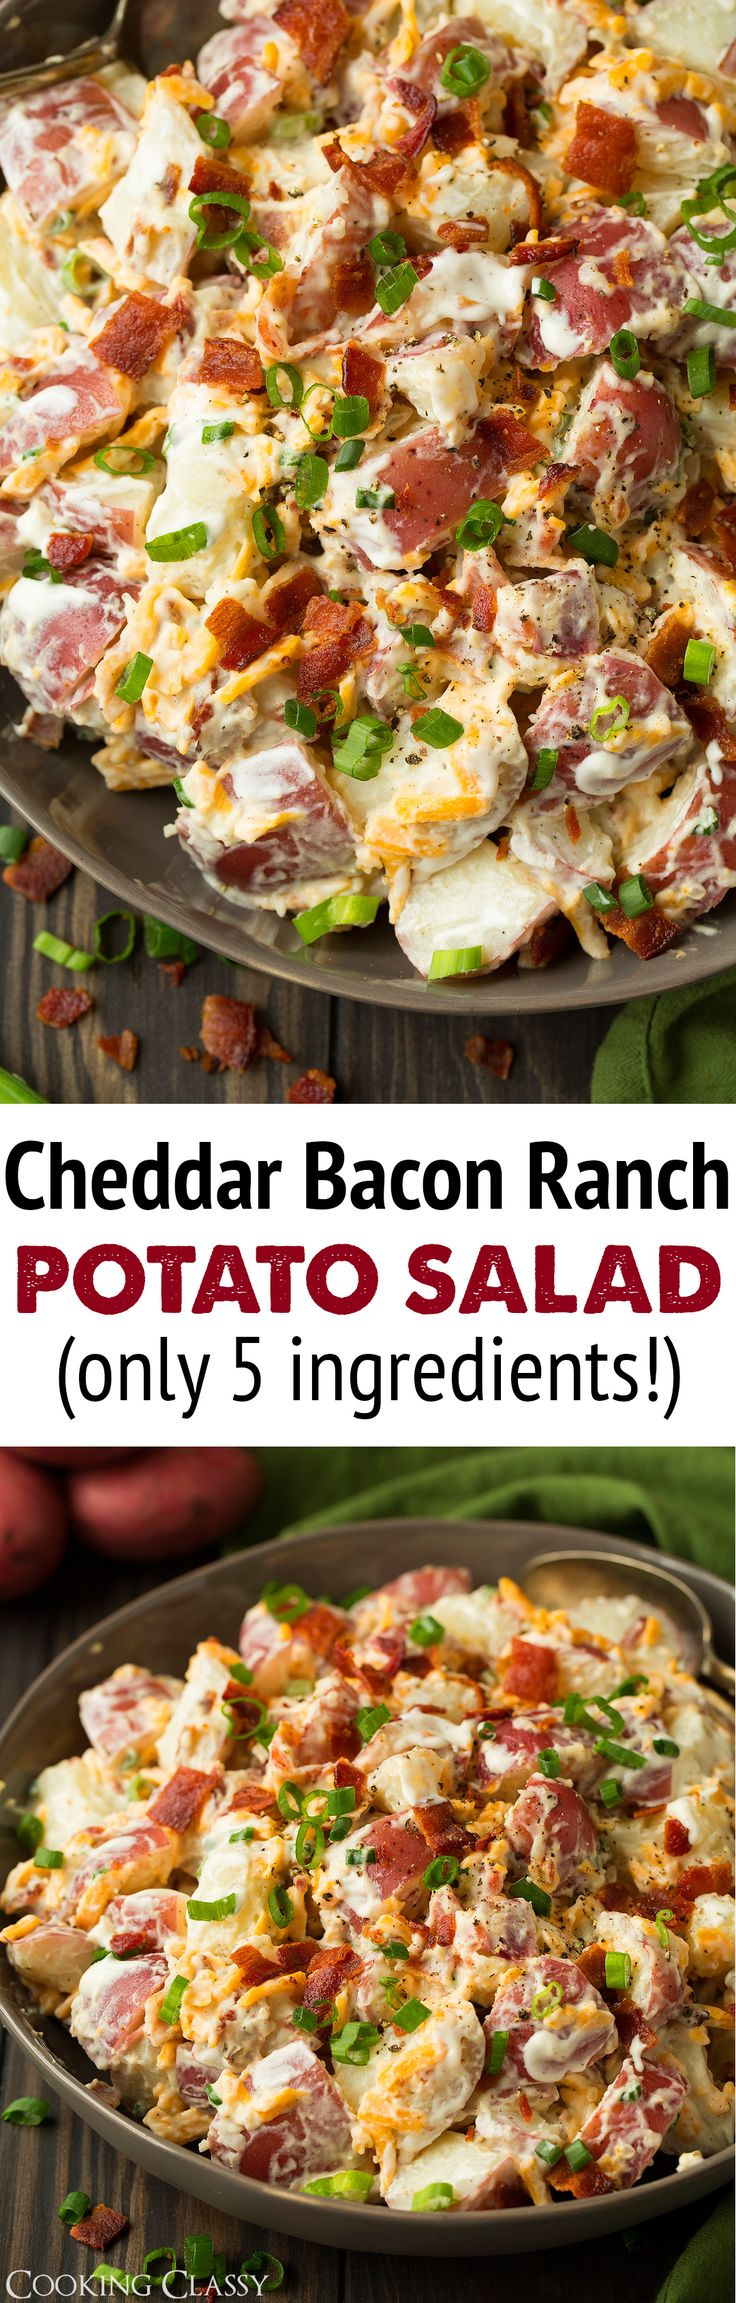 Every now and then, I love to splurge a little and have something deliciously satisfying and perfectly comforting, like this simple and hearty Cheddar Bacon Ranch Potato Salad! This potato salad only takes 5